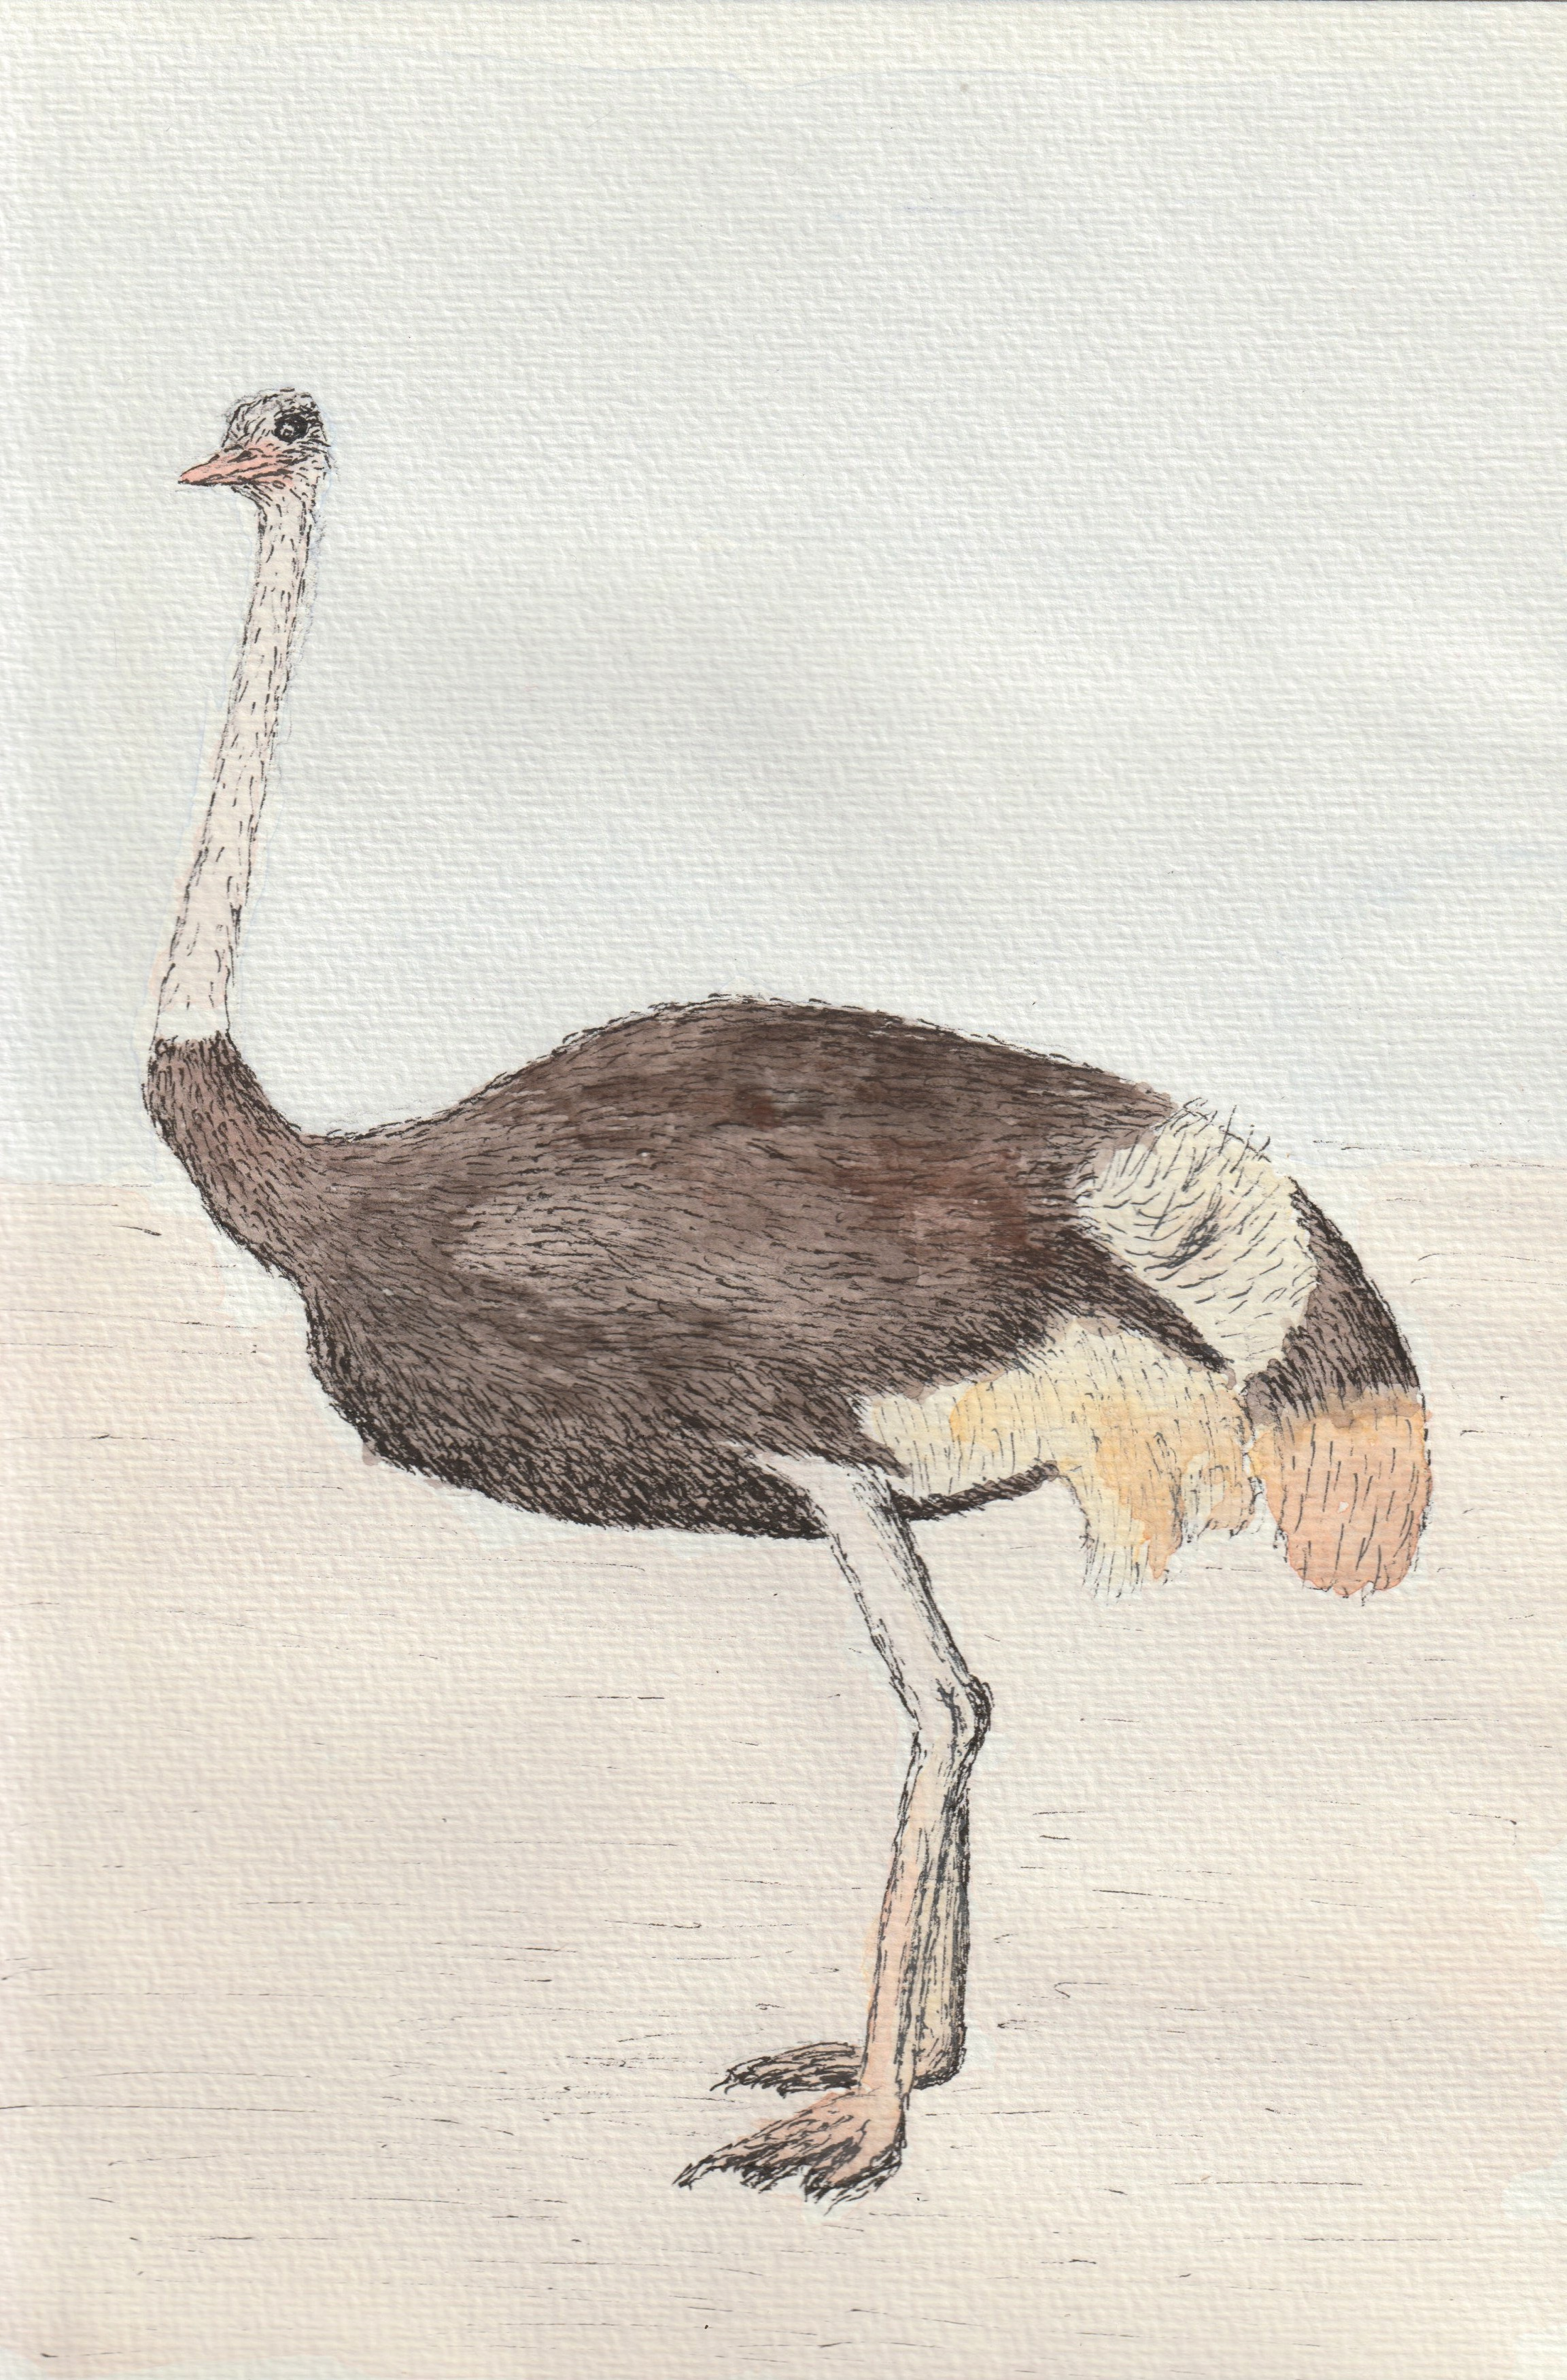 Ostrich_22May21 1